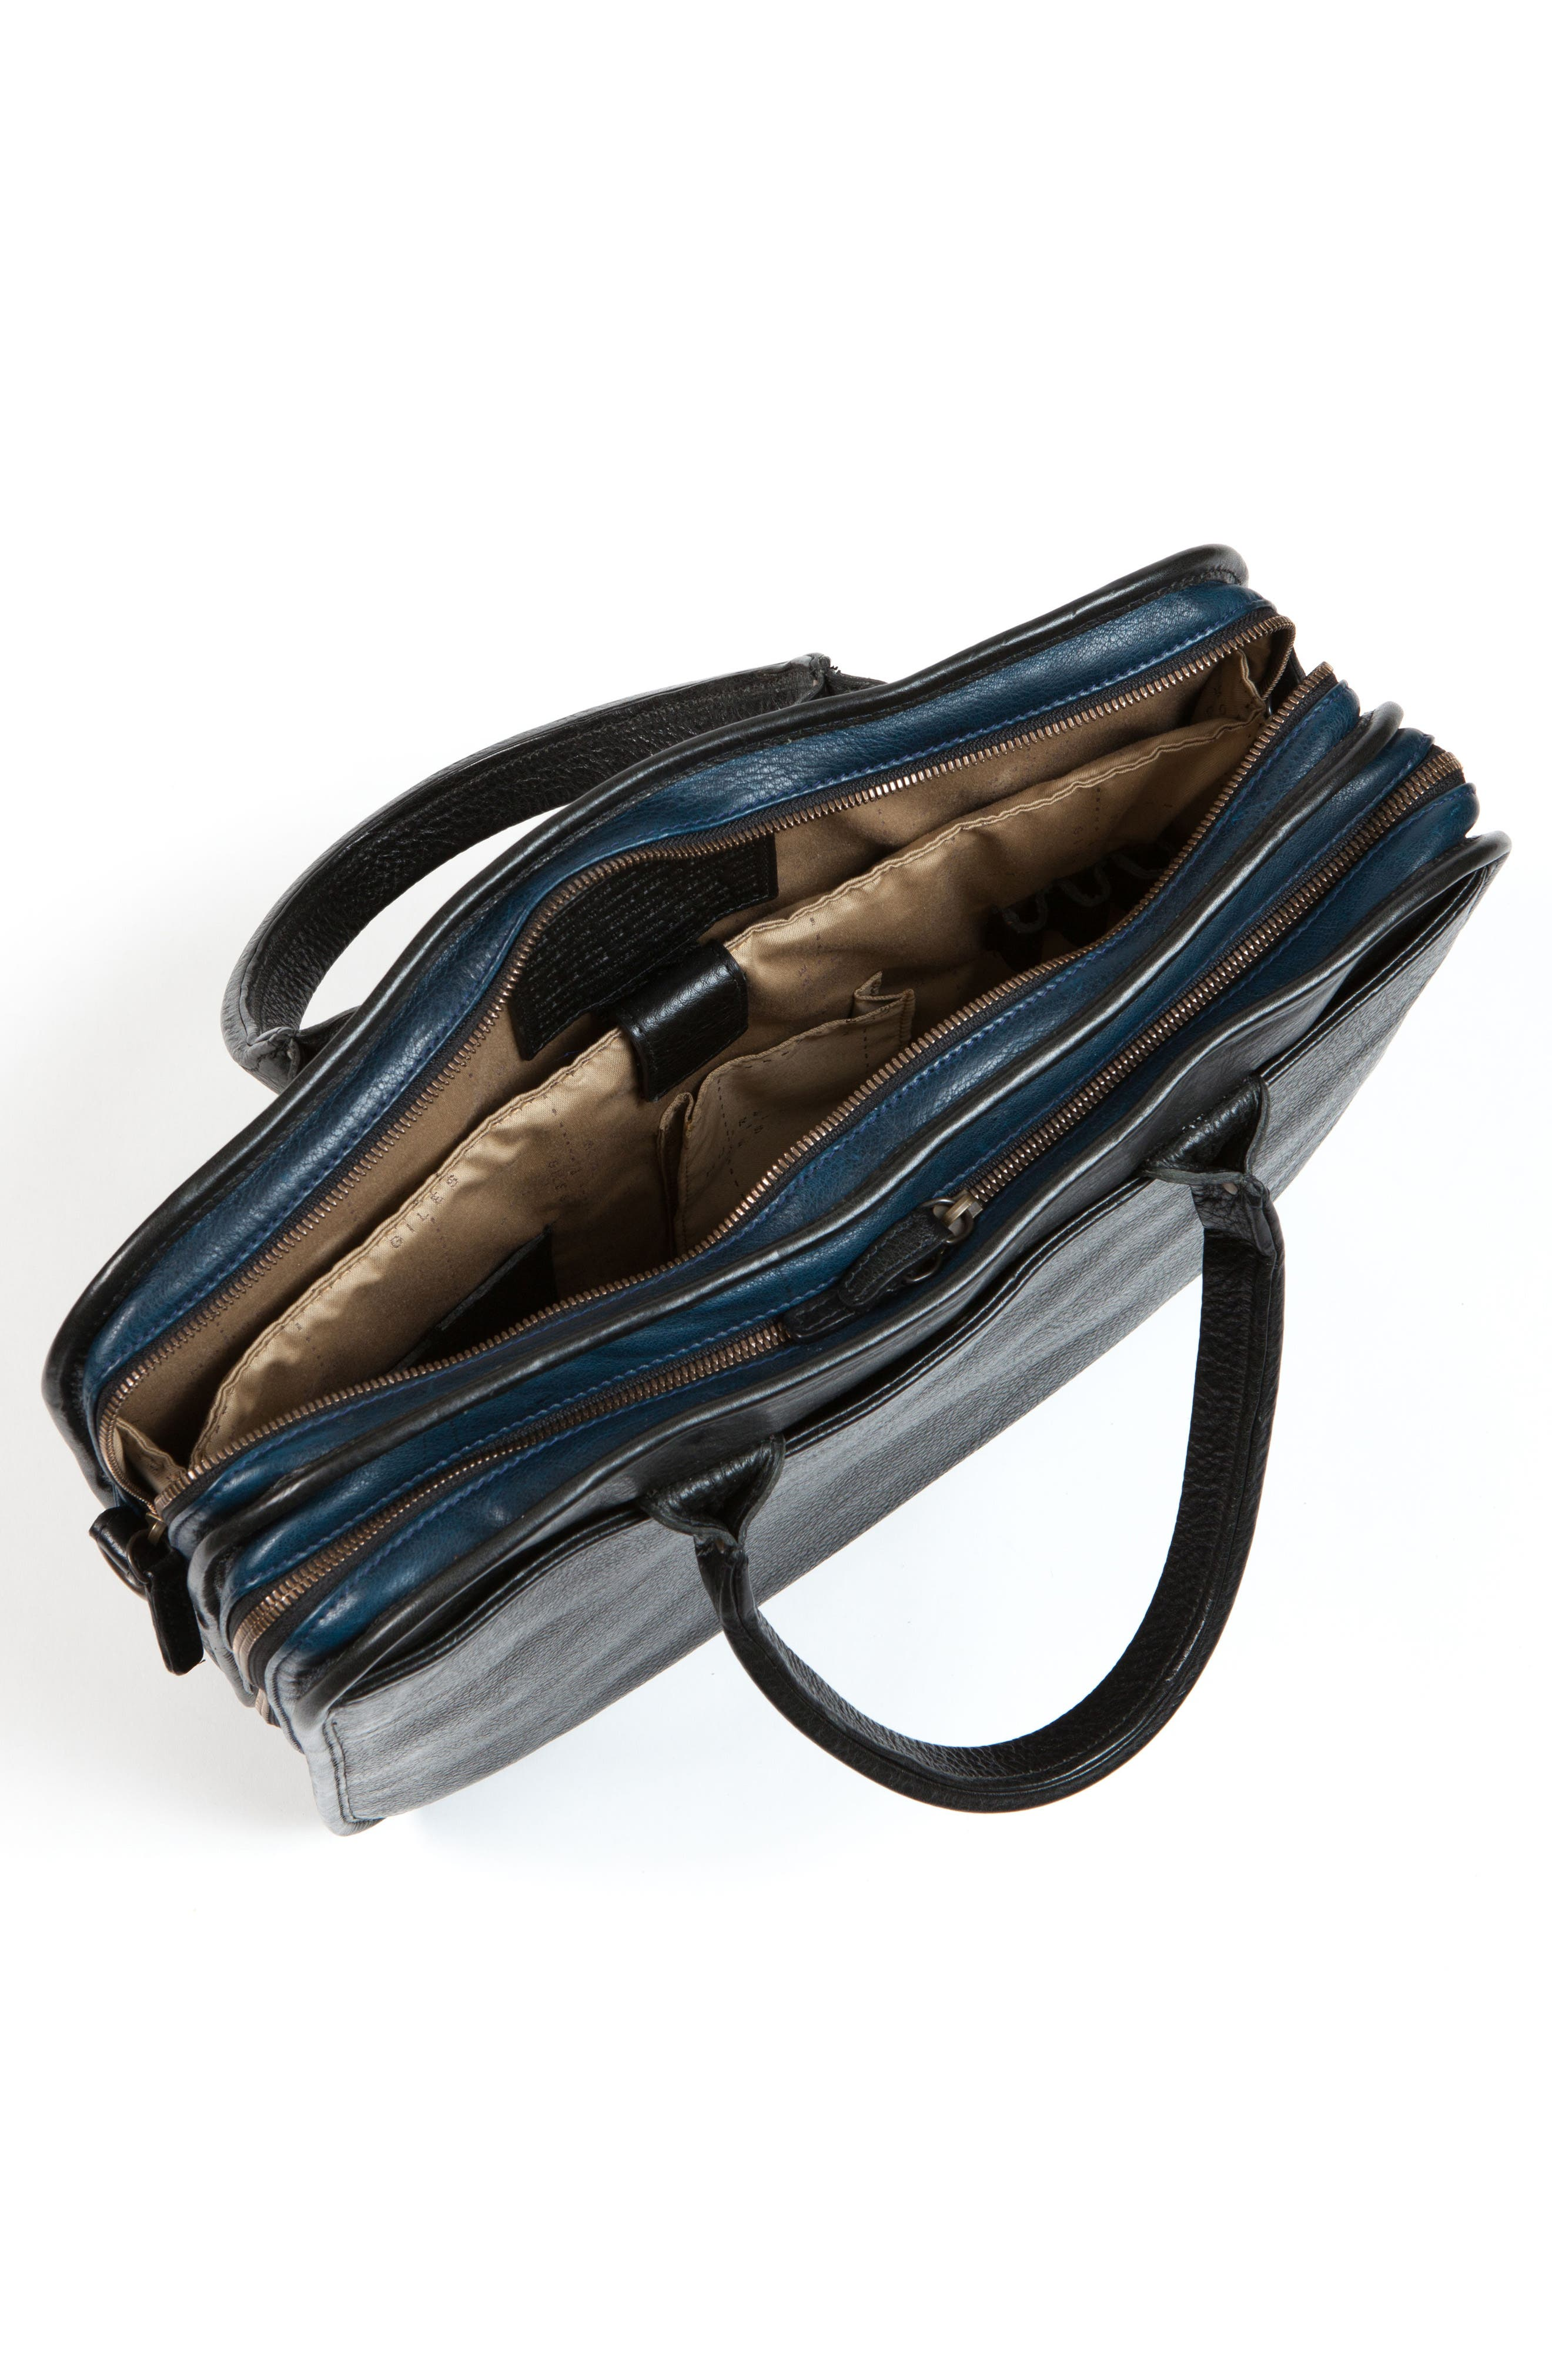 Miller Leather Briefcase,                             Alternate thumbnail 4, color,                             Titan Milled Navy And Gunmetal